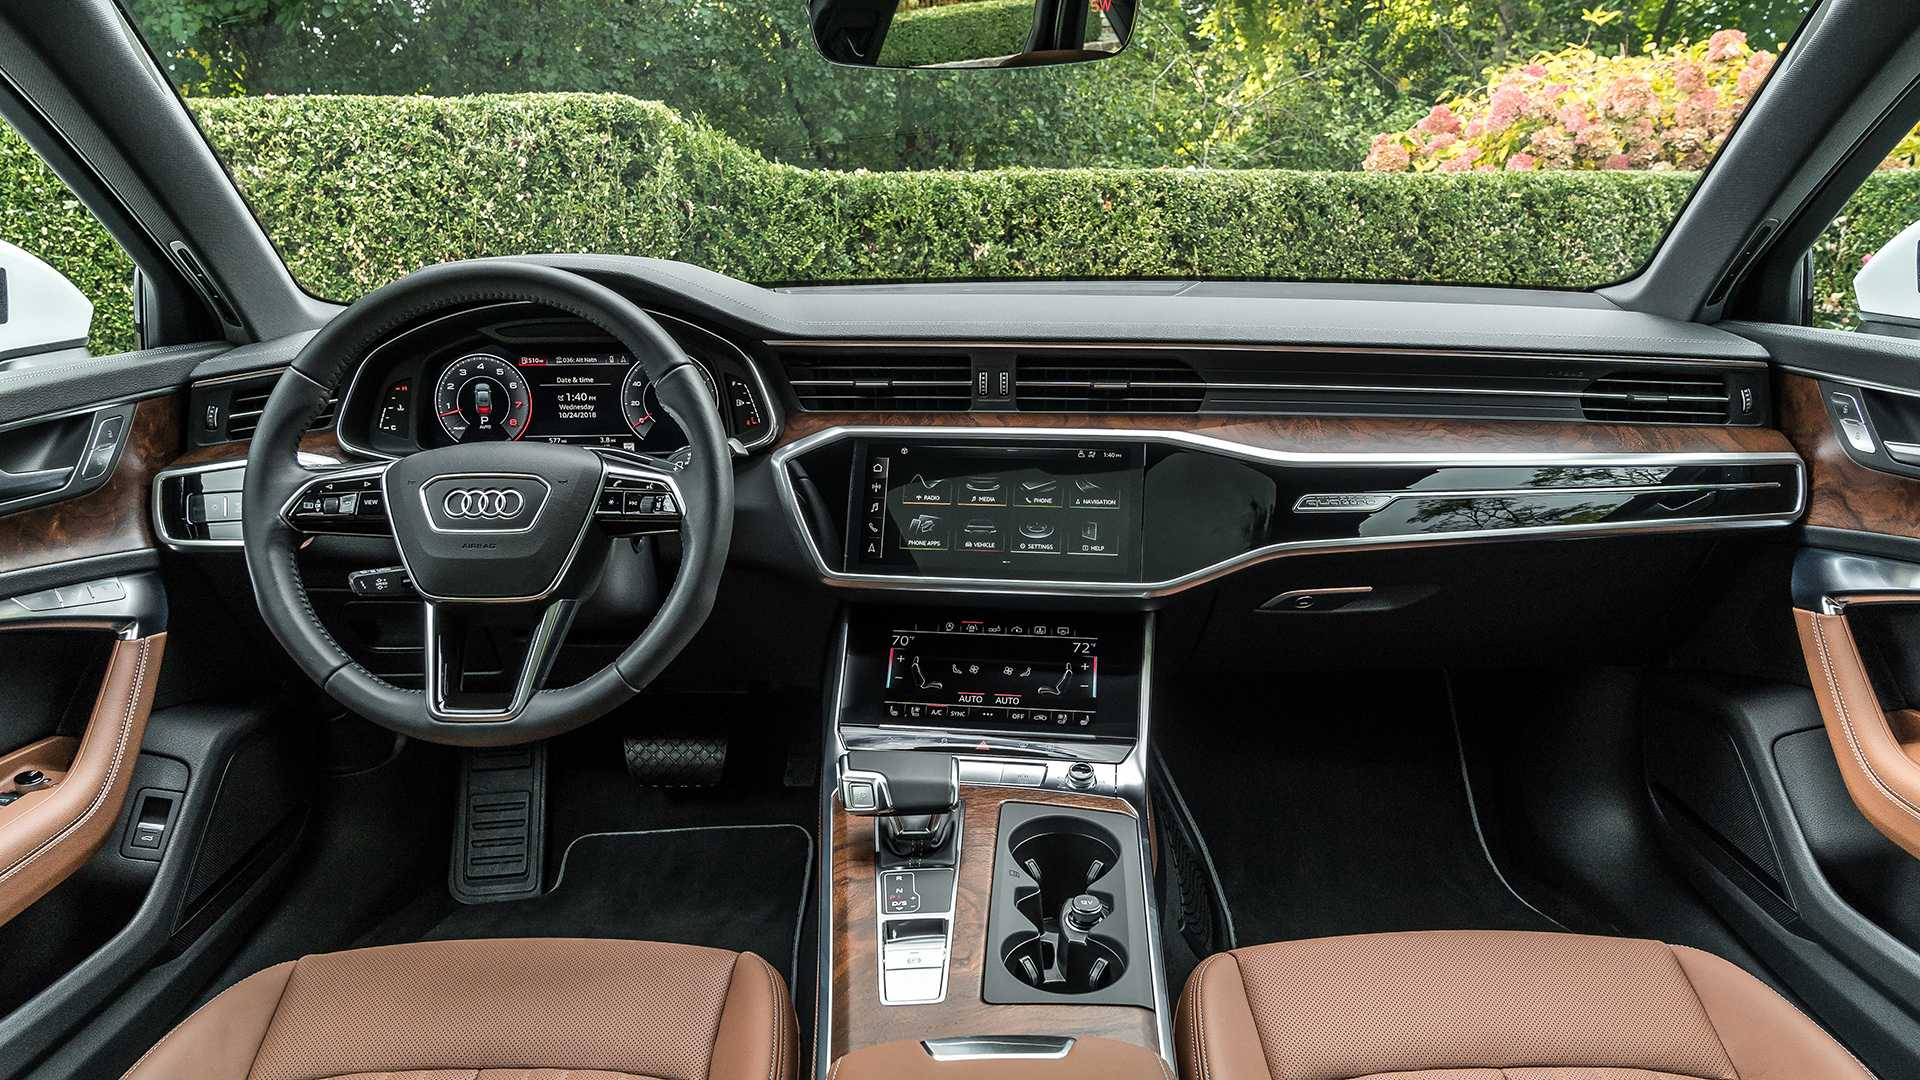 66 New 2019 Audi A6 Wallpaper